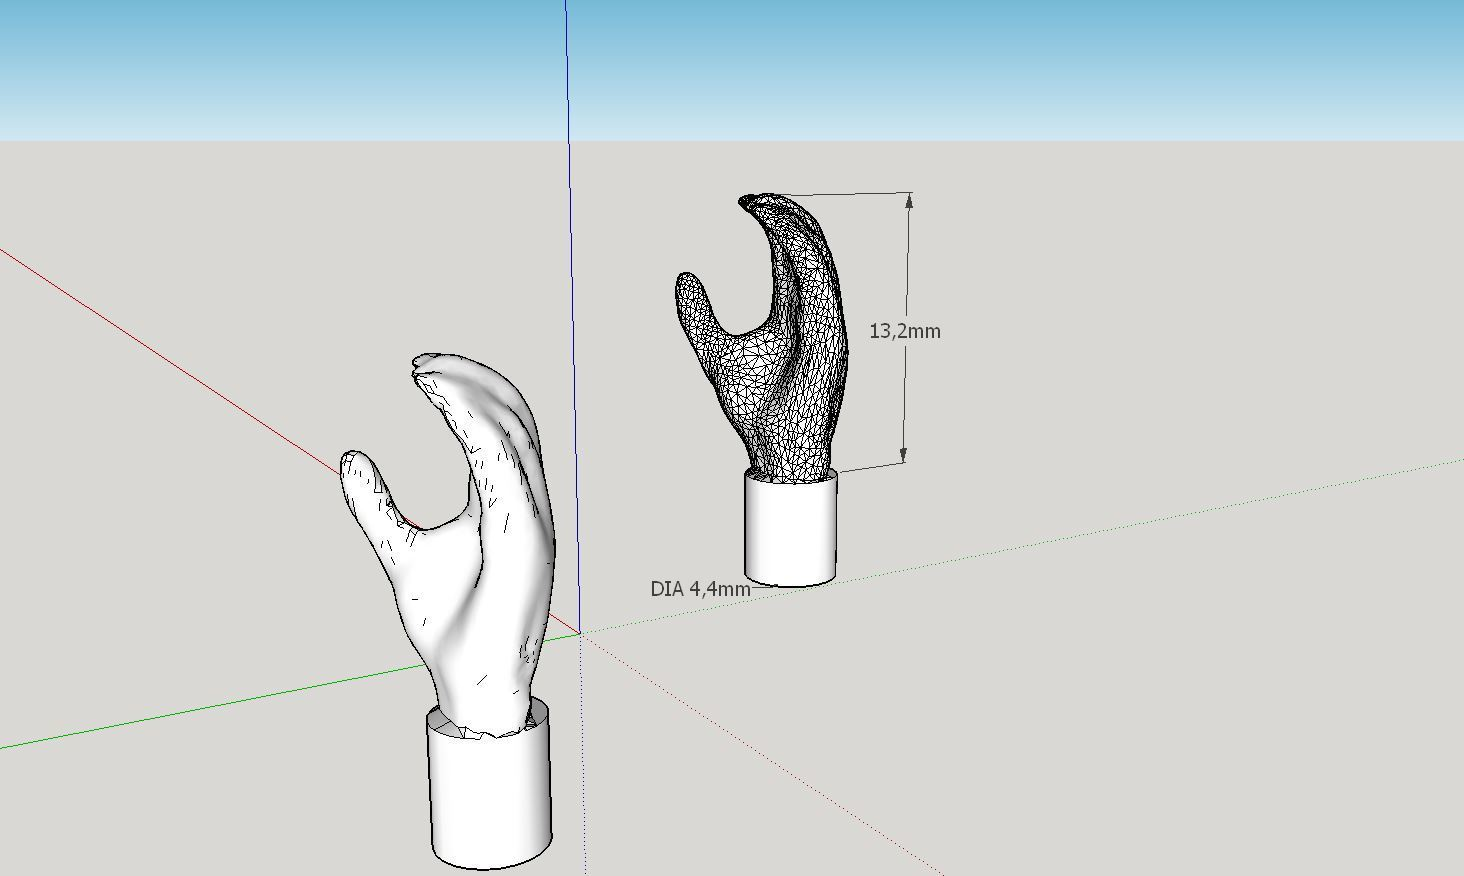 2016-10-17_11_38_22-MyScannedLegoMinifigHand_-_SketchUp_Make_2016.jpg Download free STL file Realistic Lego Minifig Hand (3d scanned) • Design to 3D print, Milan_Gajic